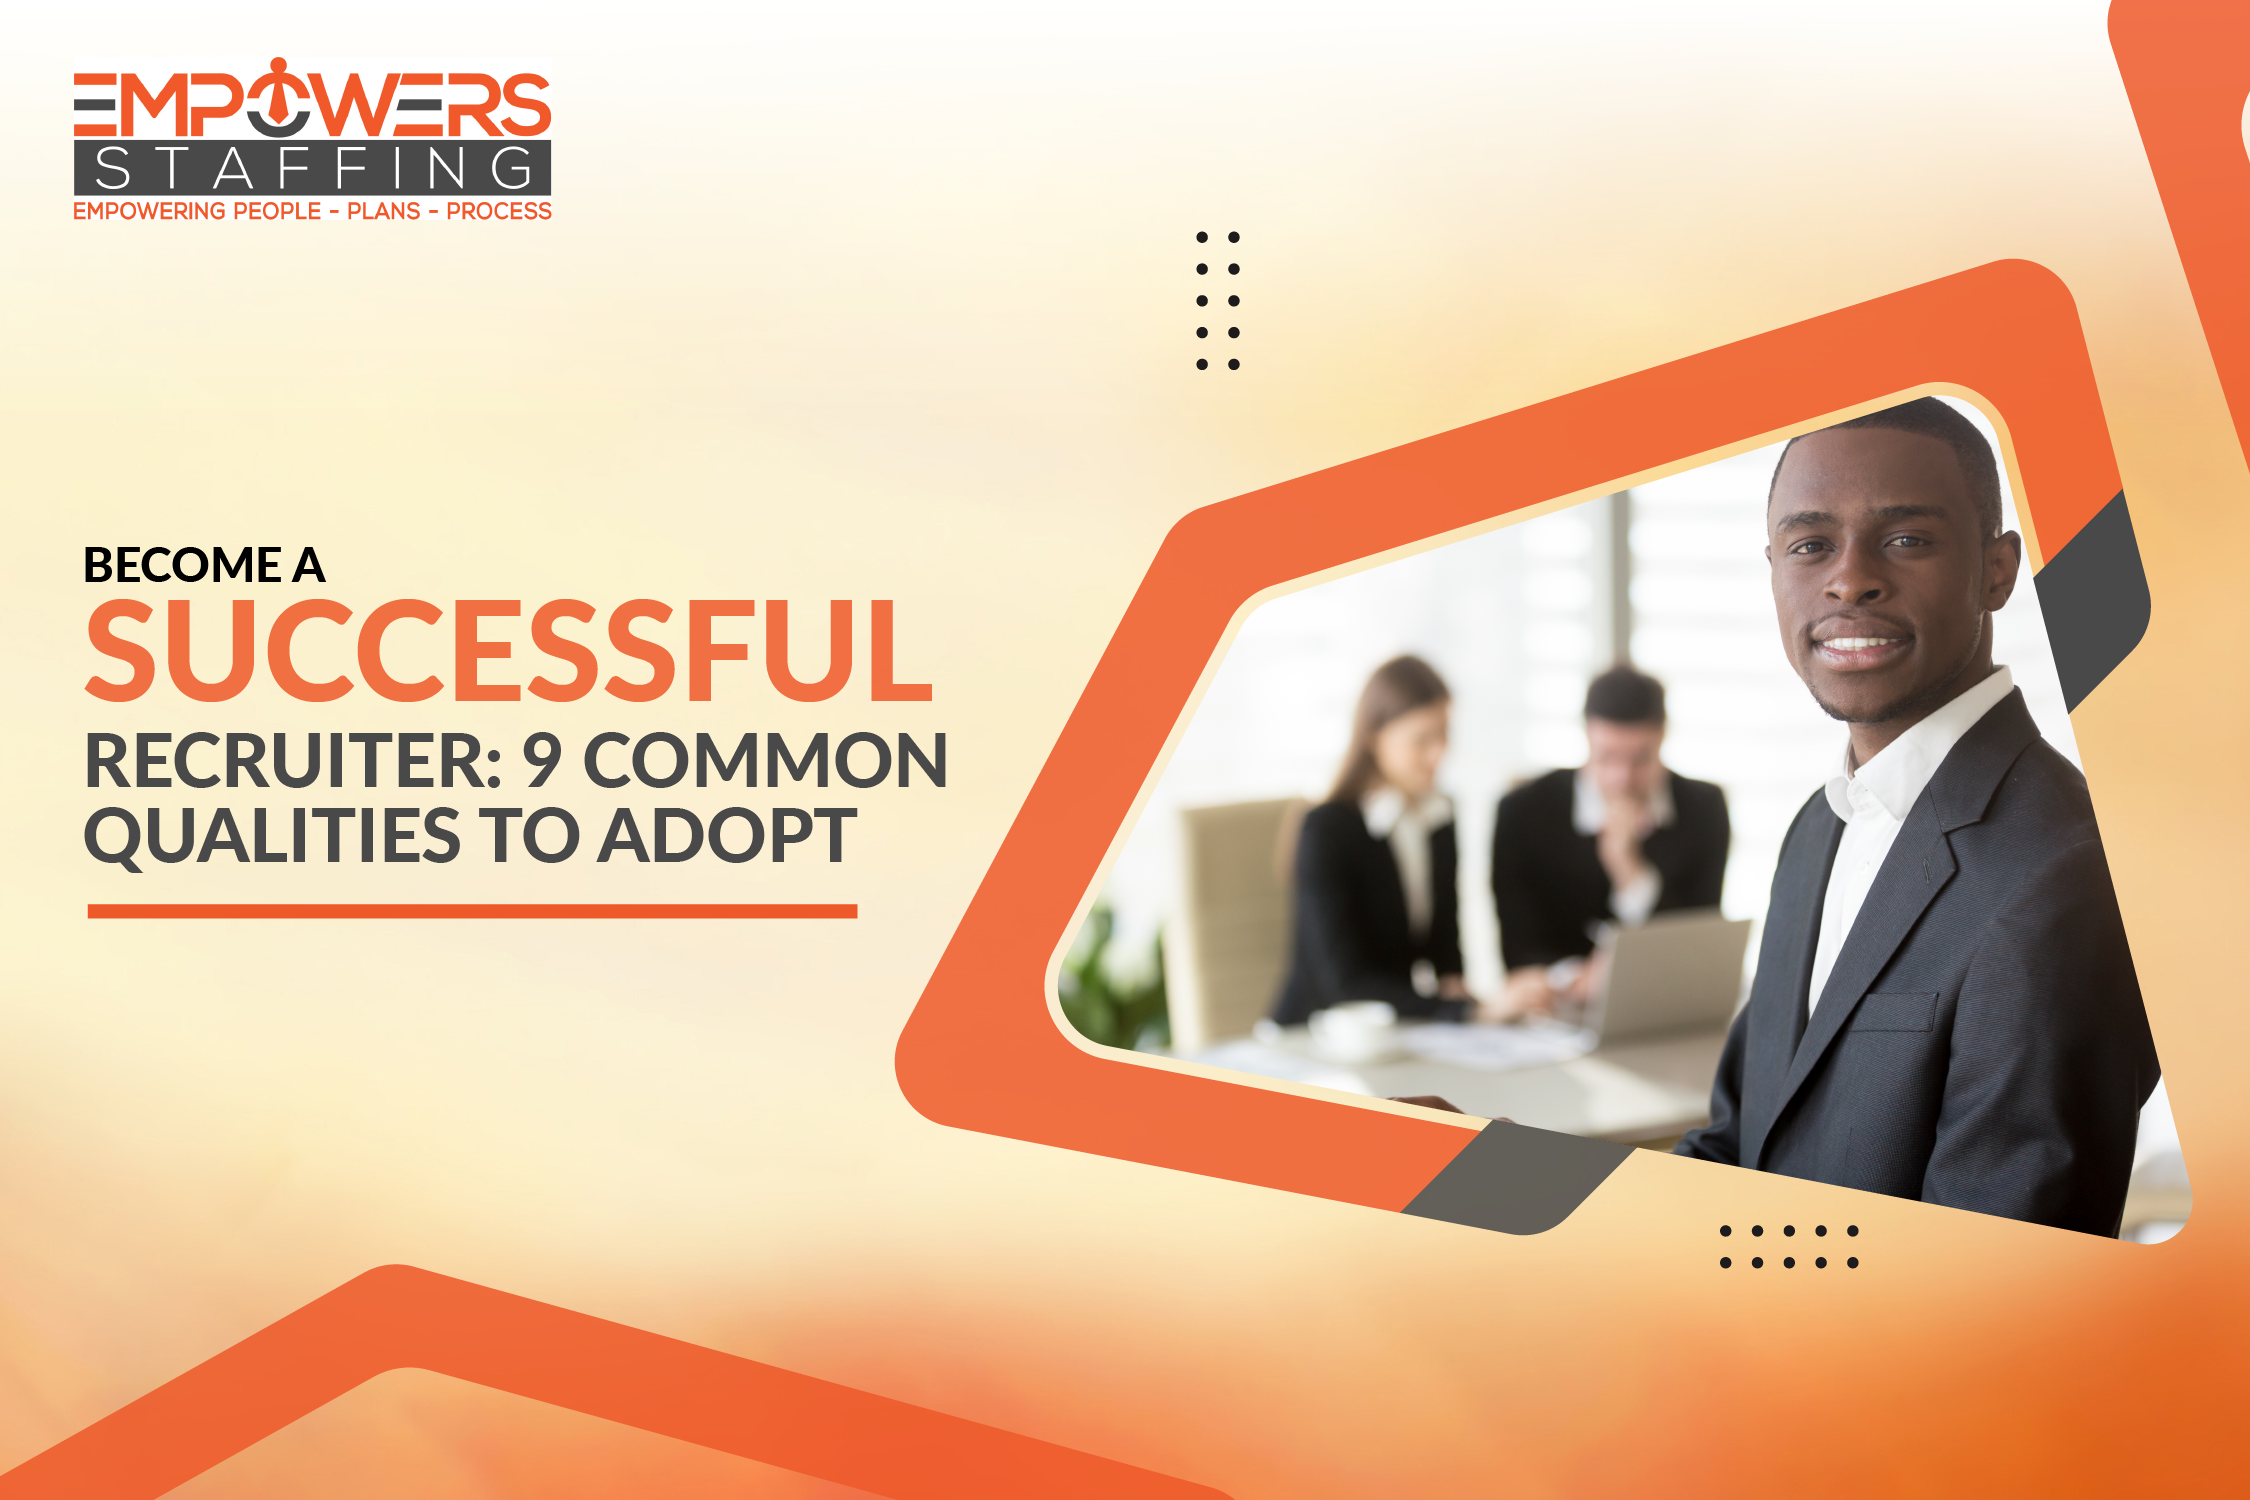 Become a Successful Recruiter: 9 Common Qualities to Adopt